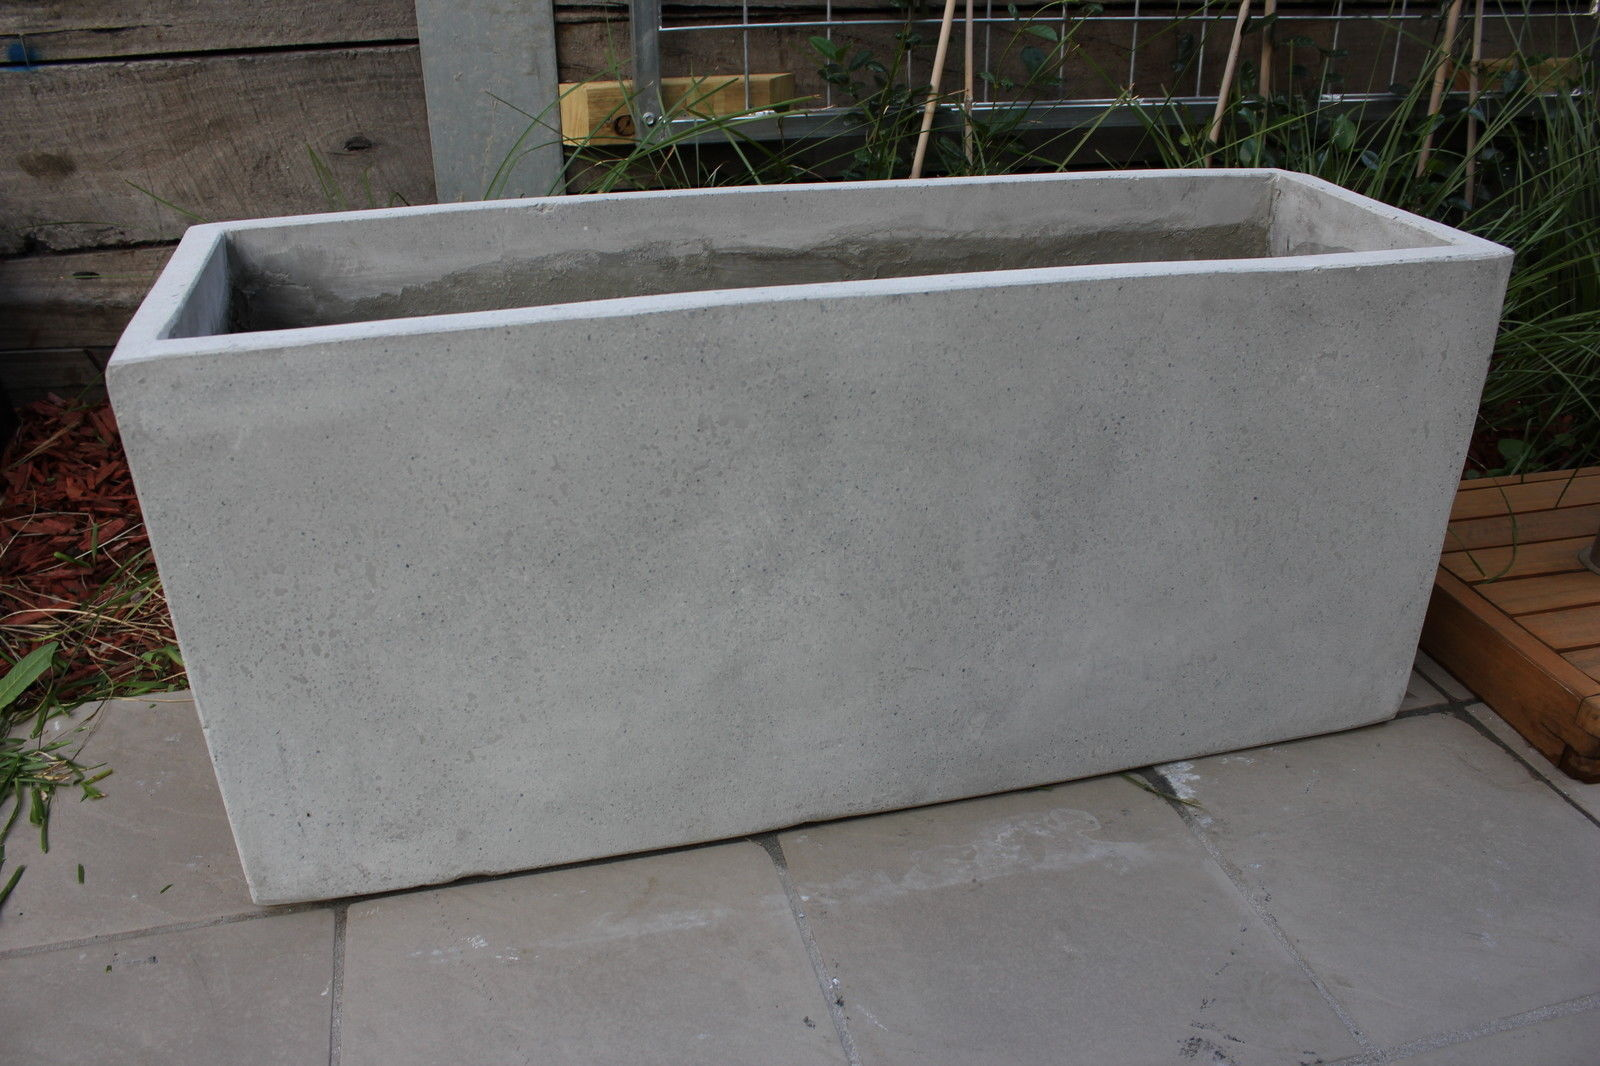 Garden pots batch of 6 x 100cm long light weight concrete Concrete planters